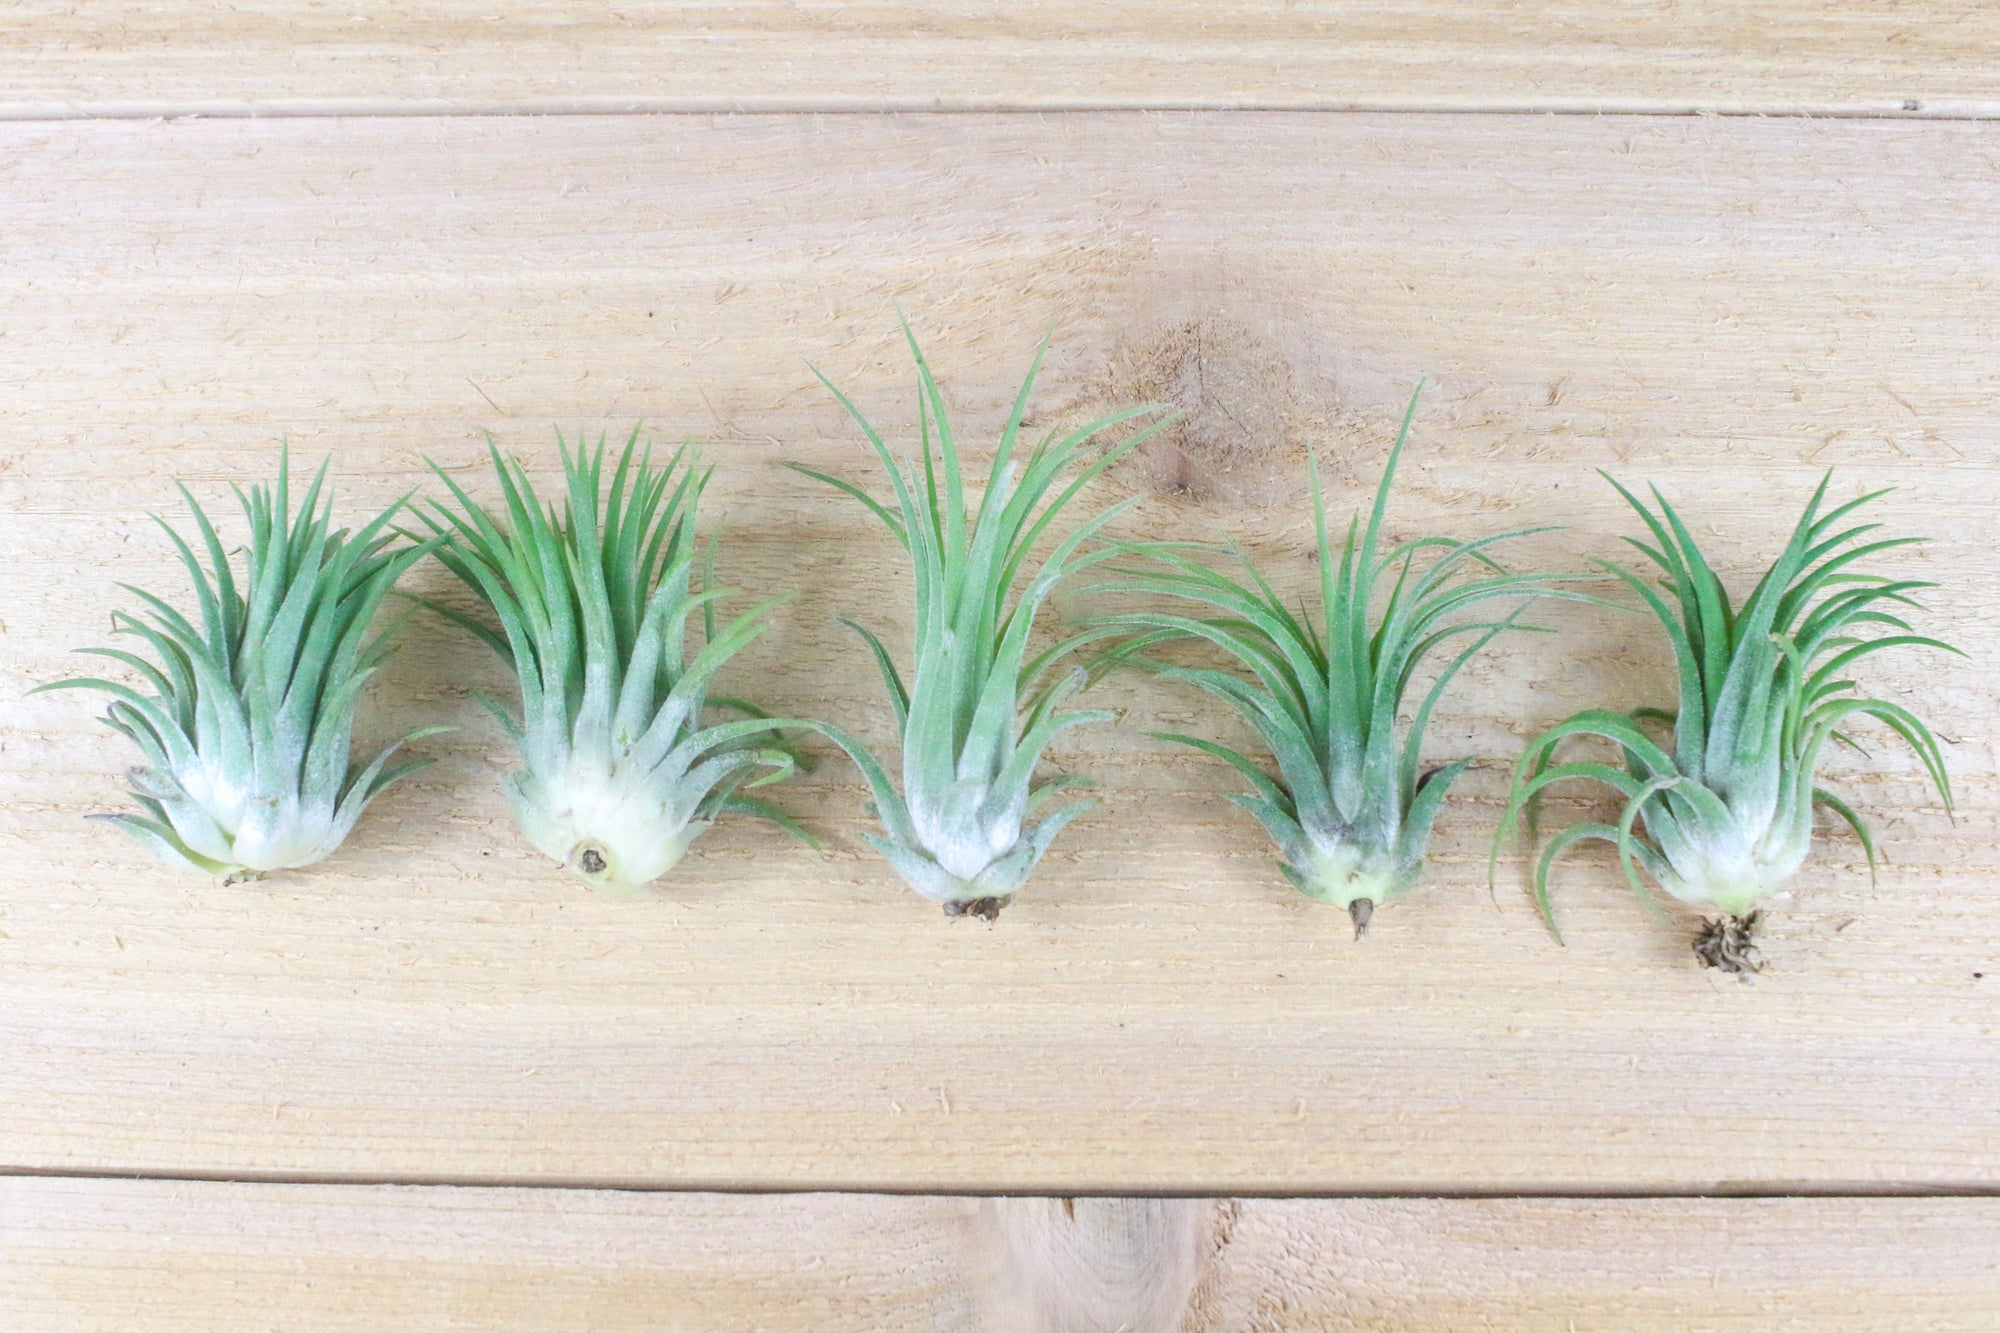 [5 Pack] Tillandsia Ionantha Rubra Air Plants from AirPlantShop.com